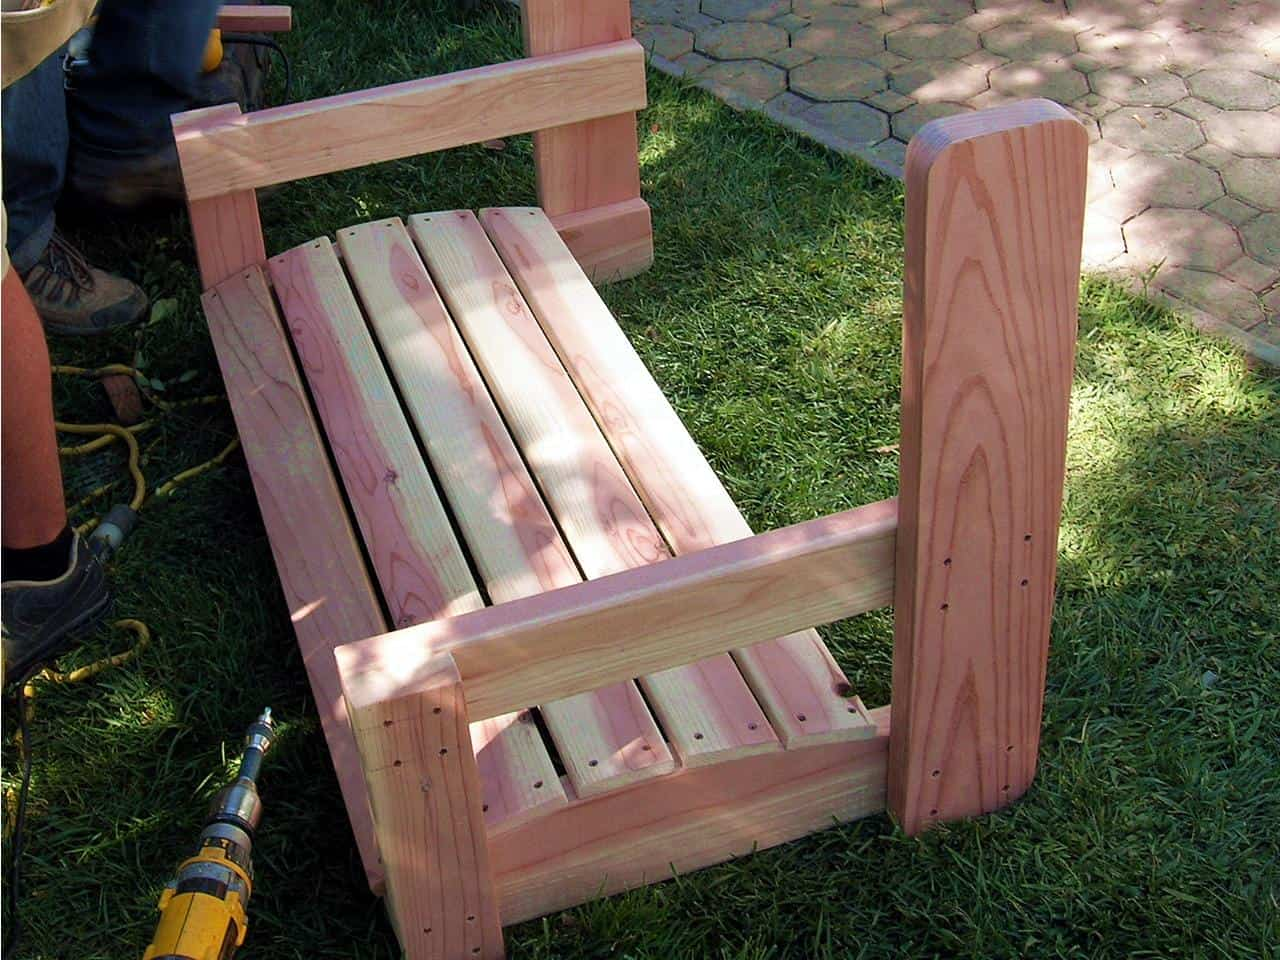 Wondrous Fantastic Diy Porch And Garden Swing Tutorials For Spring Caraccident5 Cool Chair Designs And Ideas Caraccident5Info